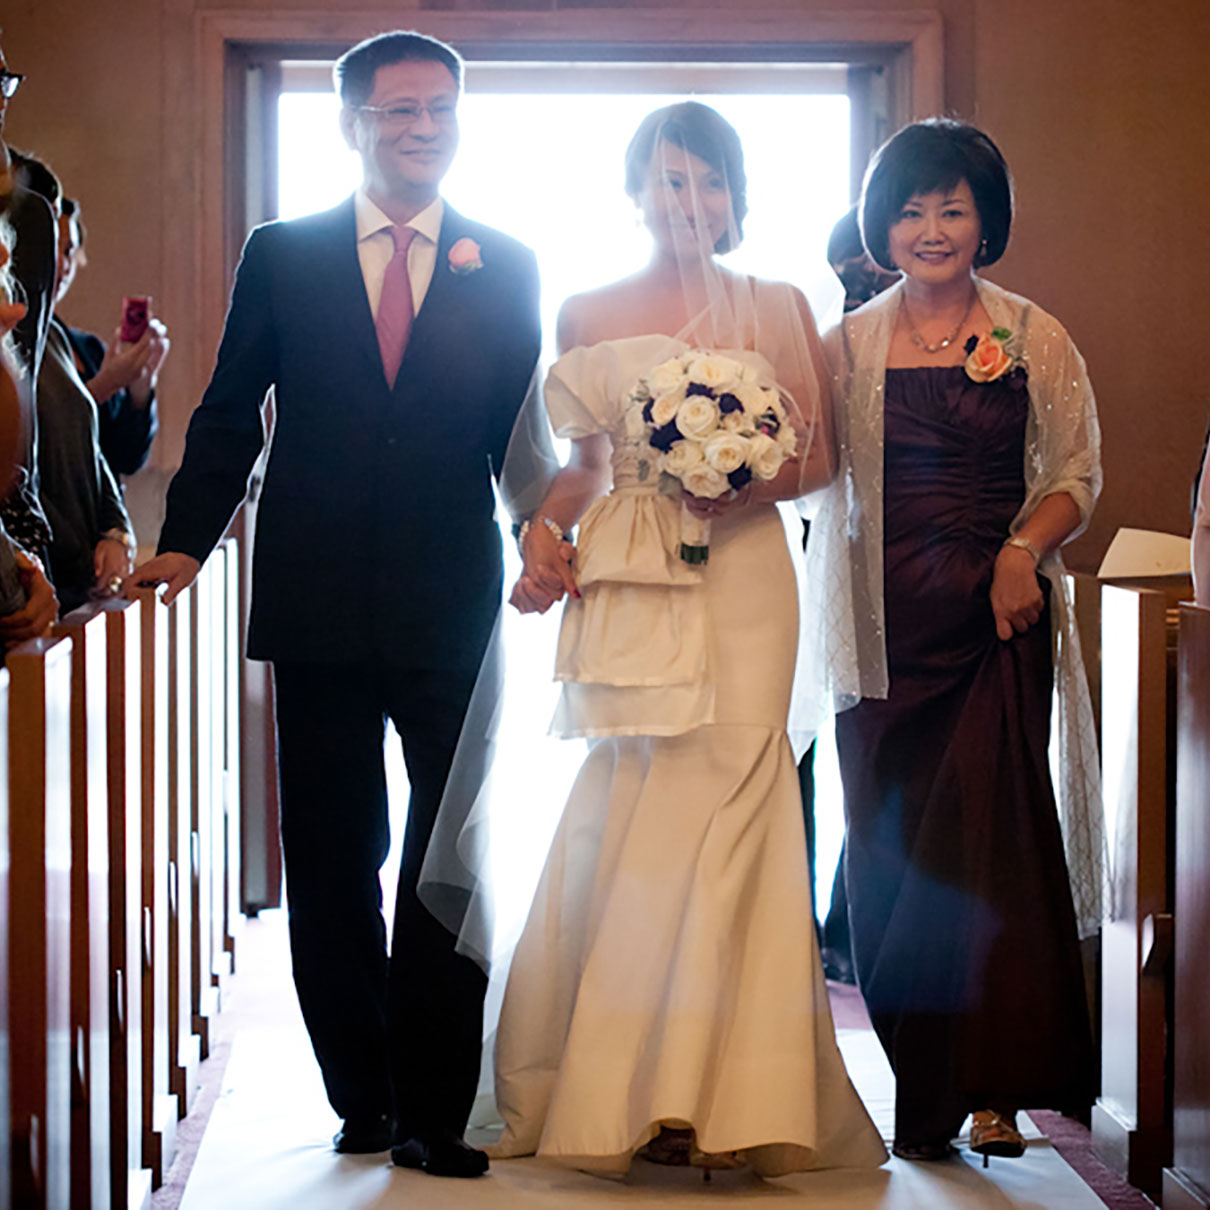 Wedding Poses With Parents: Wedding Wednesdays Q&A: How To Deal With Divorced Parents